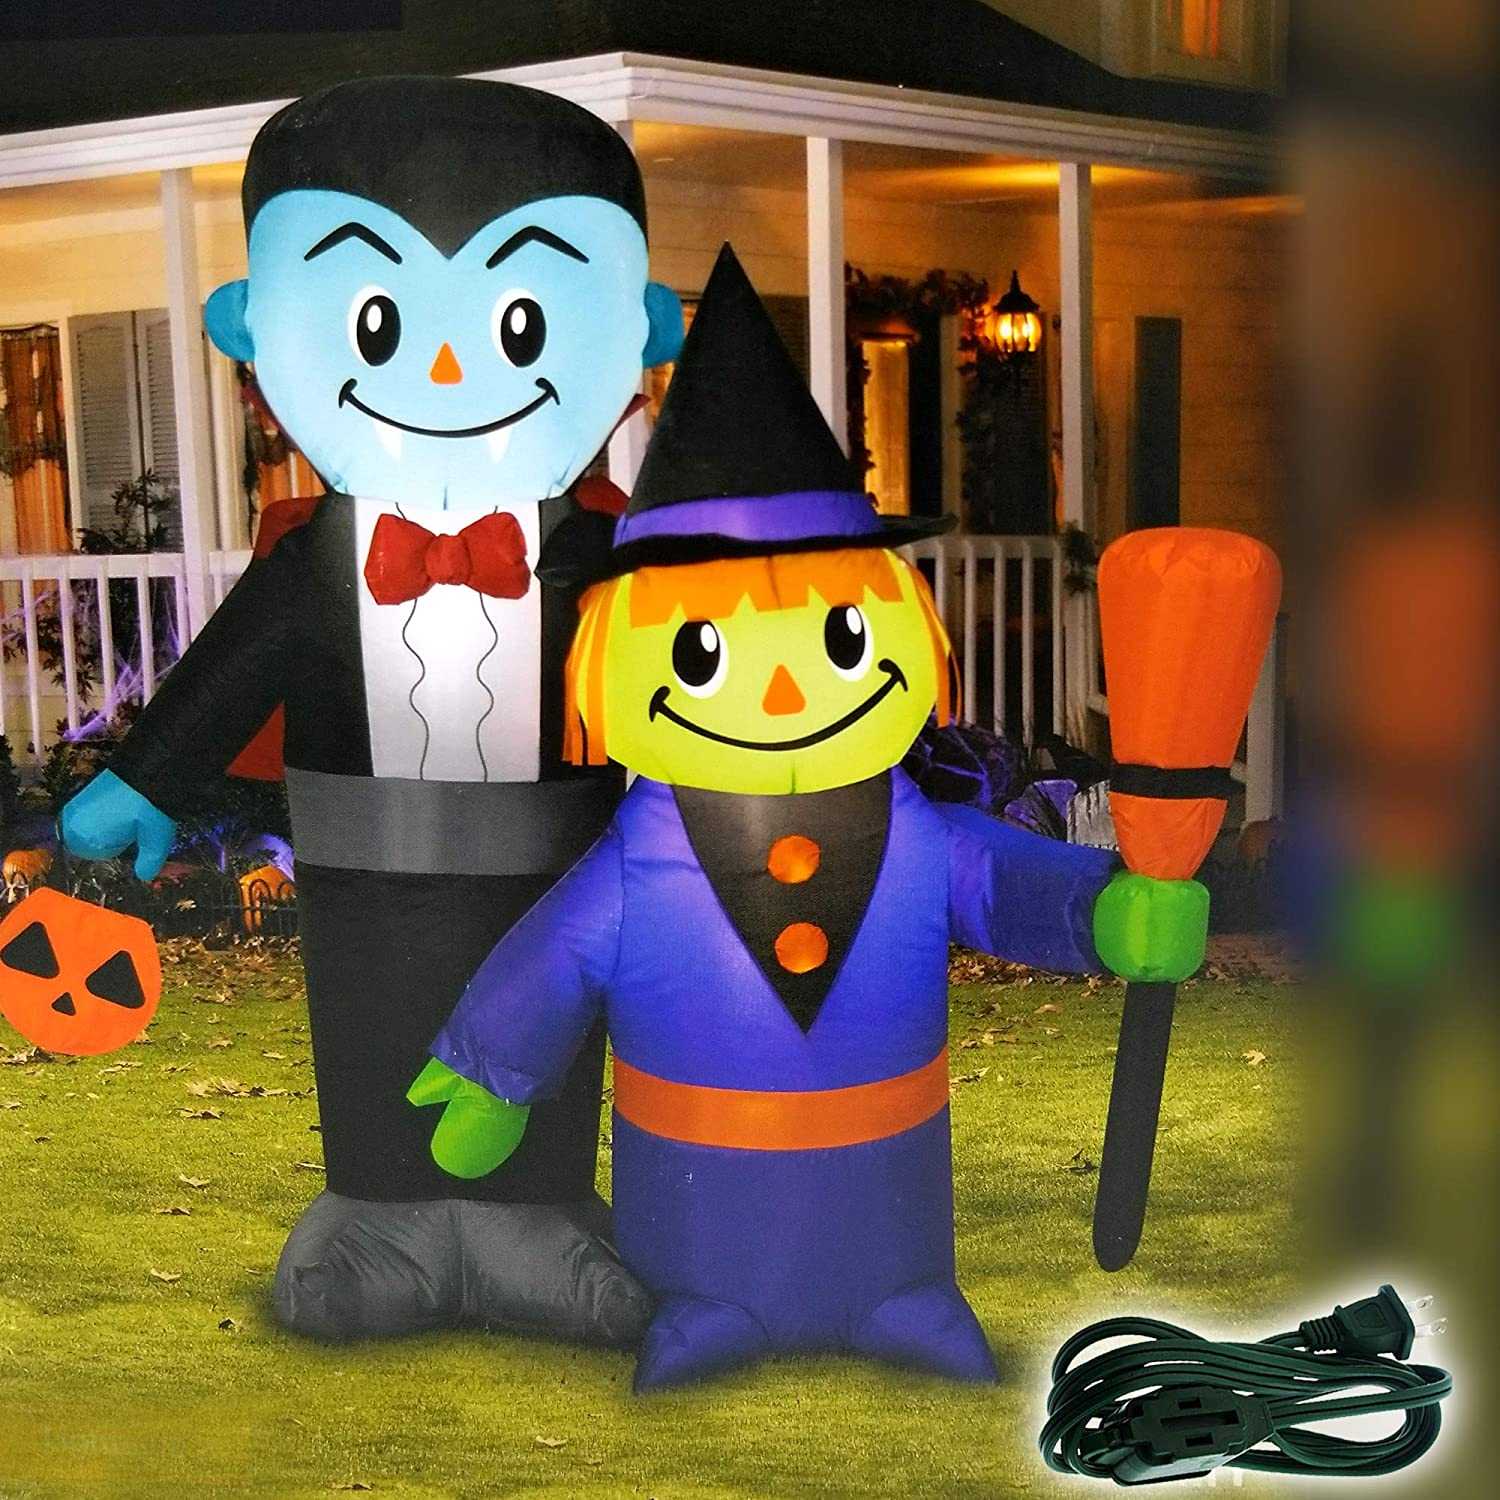 Booyard Halloween Inflatable Decorations Outdoor AirBlown Outdoor Yard  Inflatables (Vampire and Witch Family)